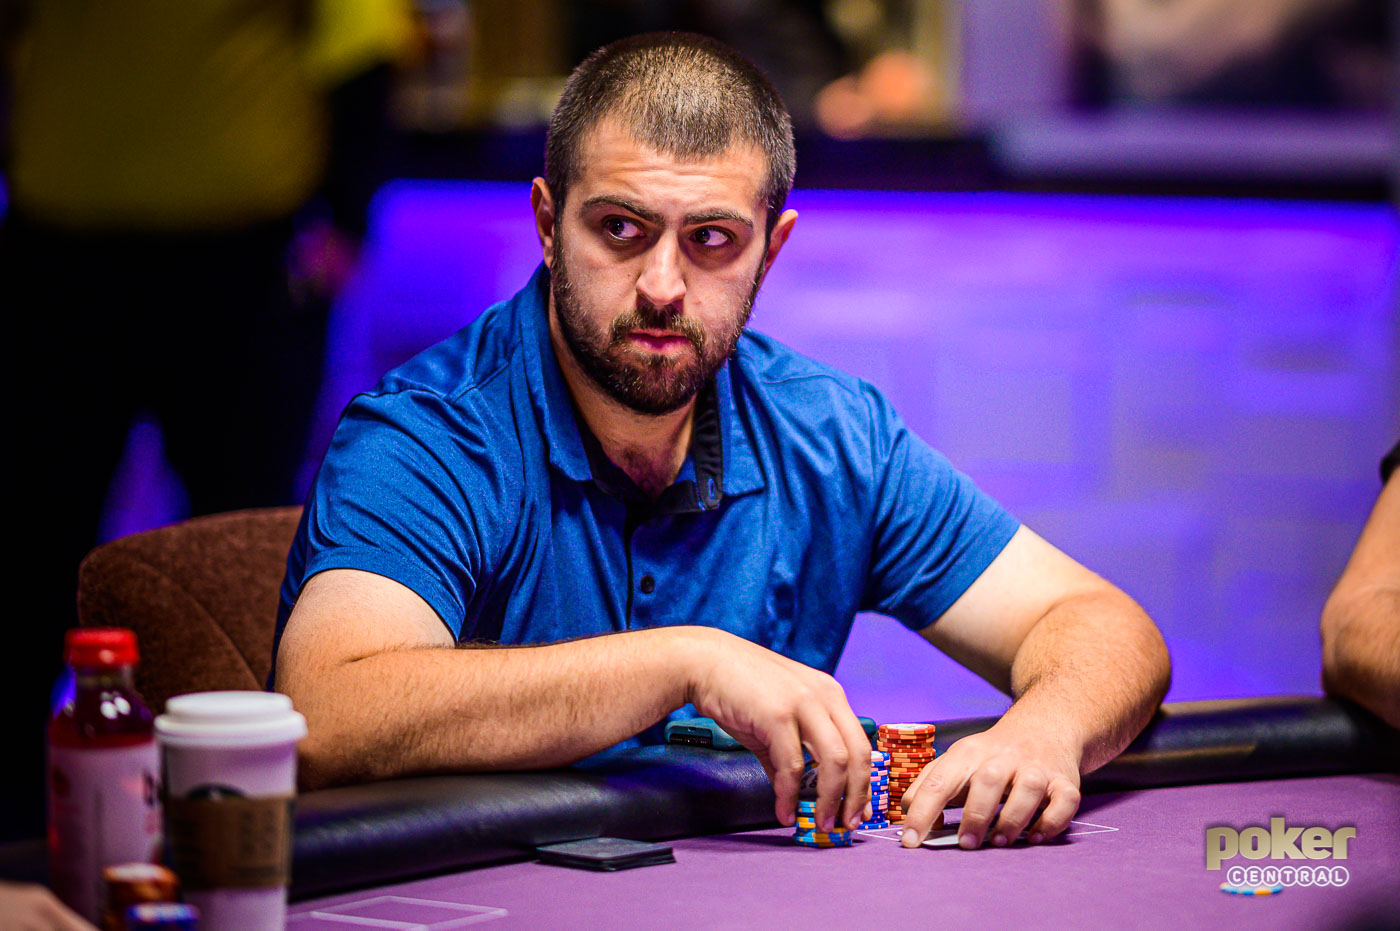 Scott Blumstein finished sixth in Event #1 of the Poker Masters.